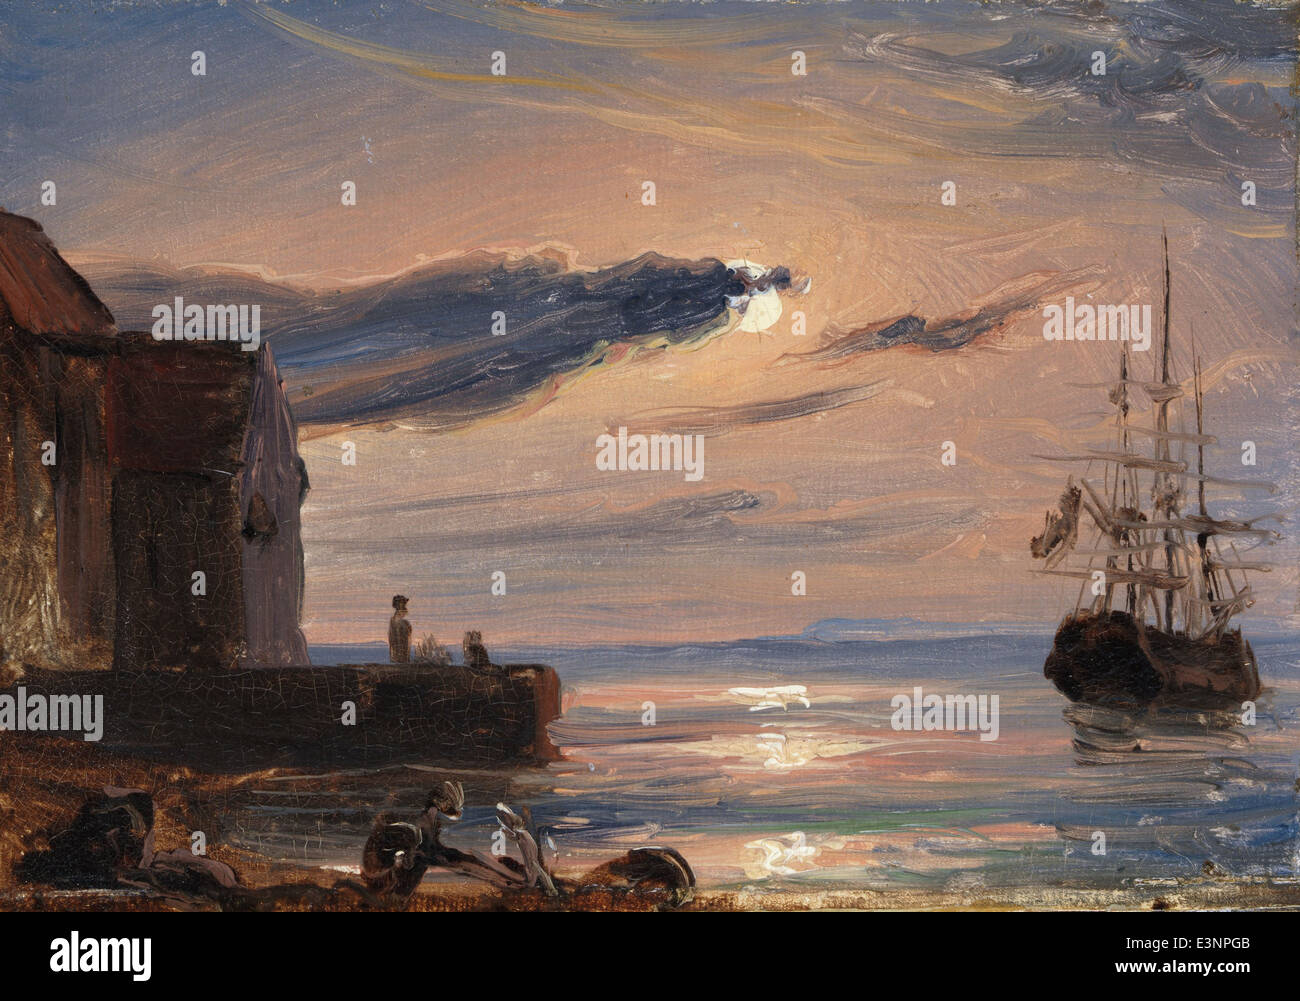 Thomas Fearnley - Moonlit Harbor in Southern Italy - 1835 - Stock Image